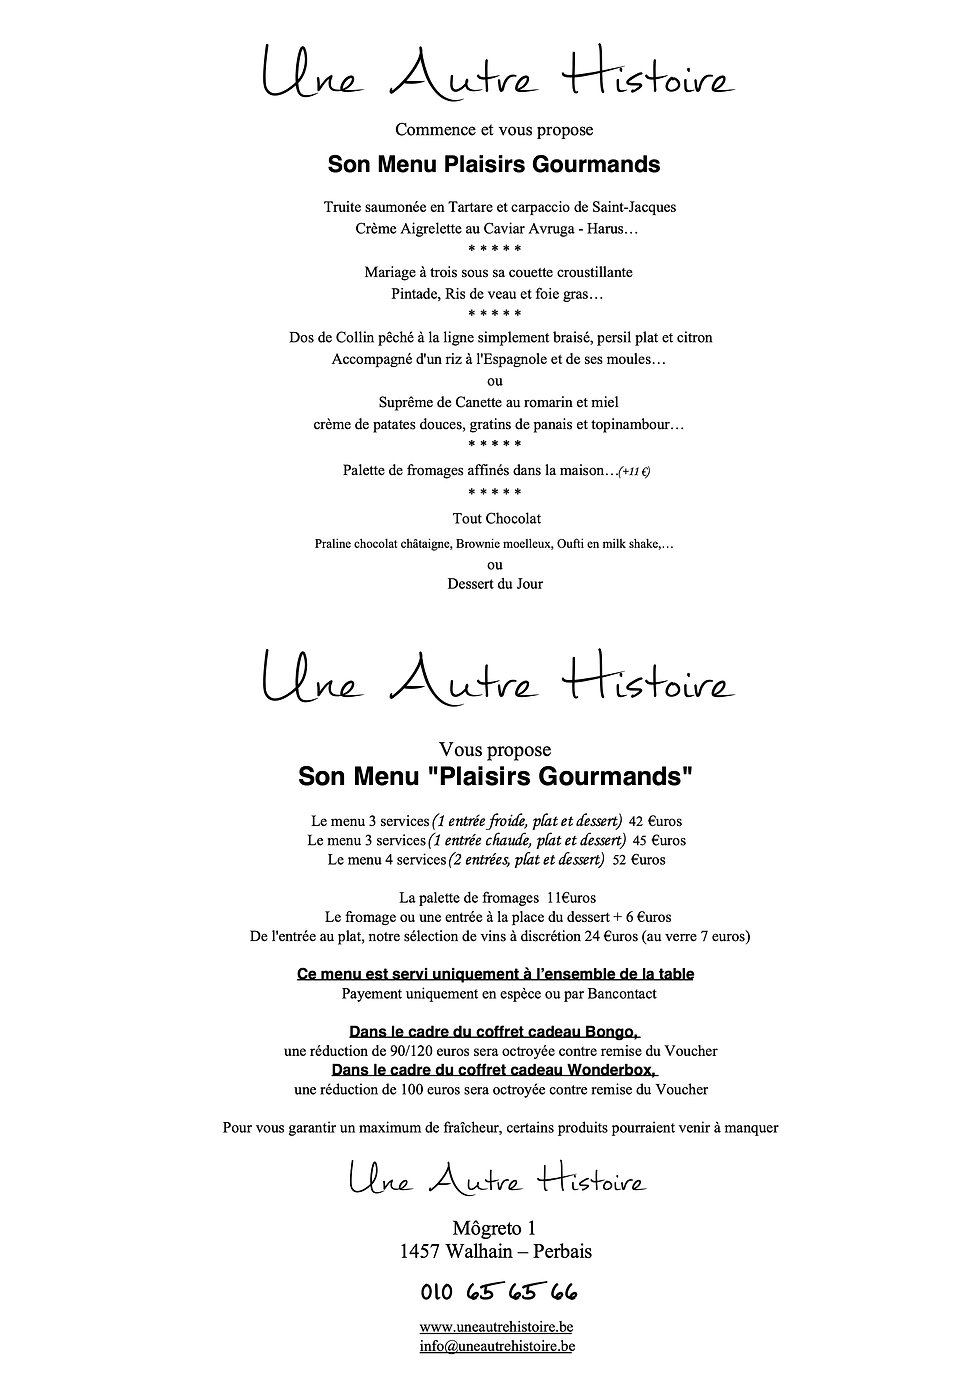 Menus 2020 09 30 Plaisirs Gourmands.jpg